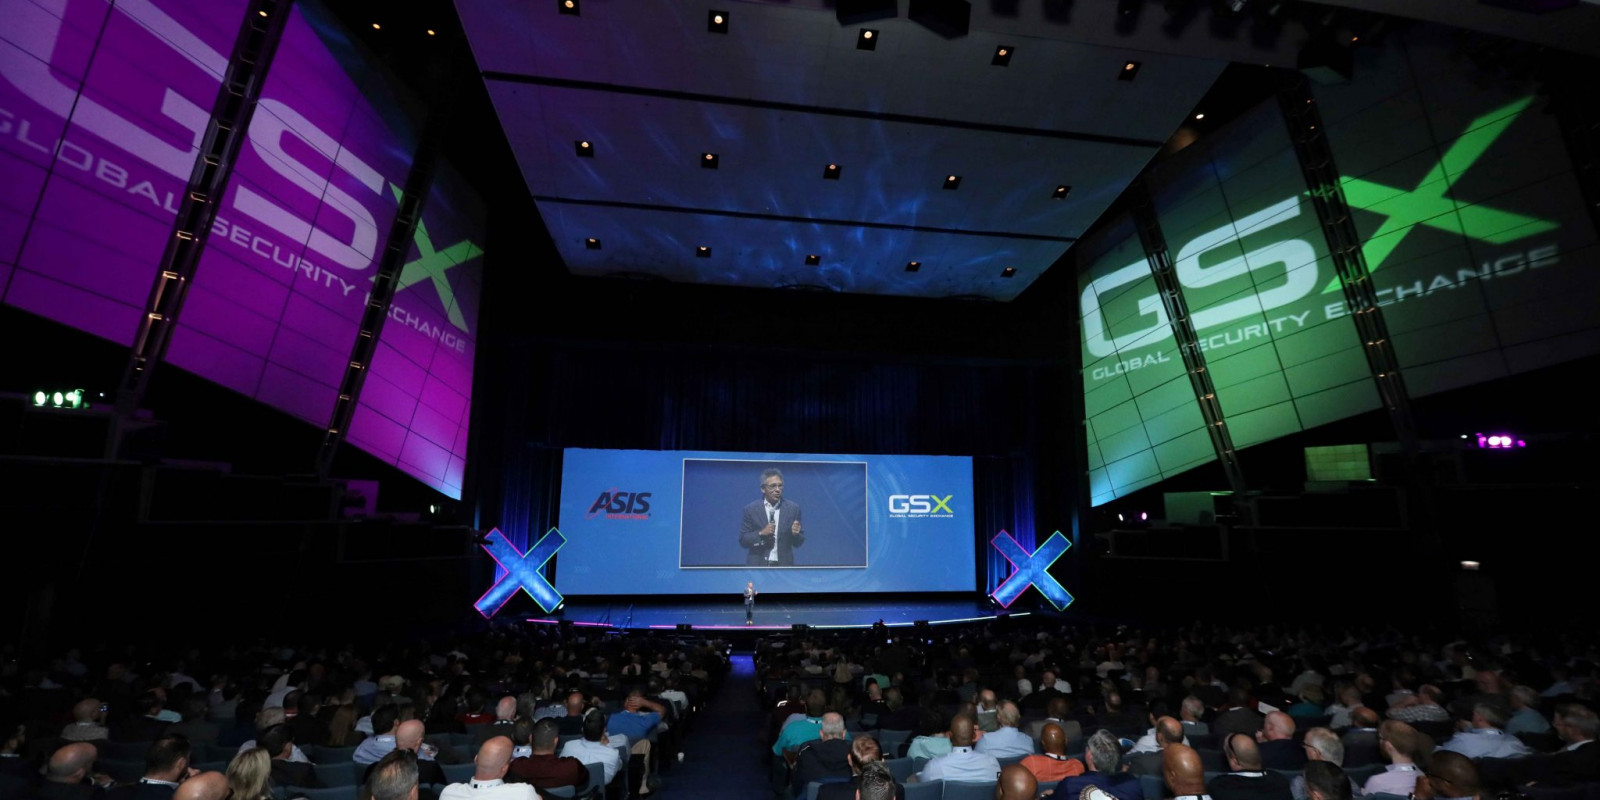 GSX 2020 general session